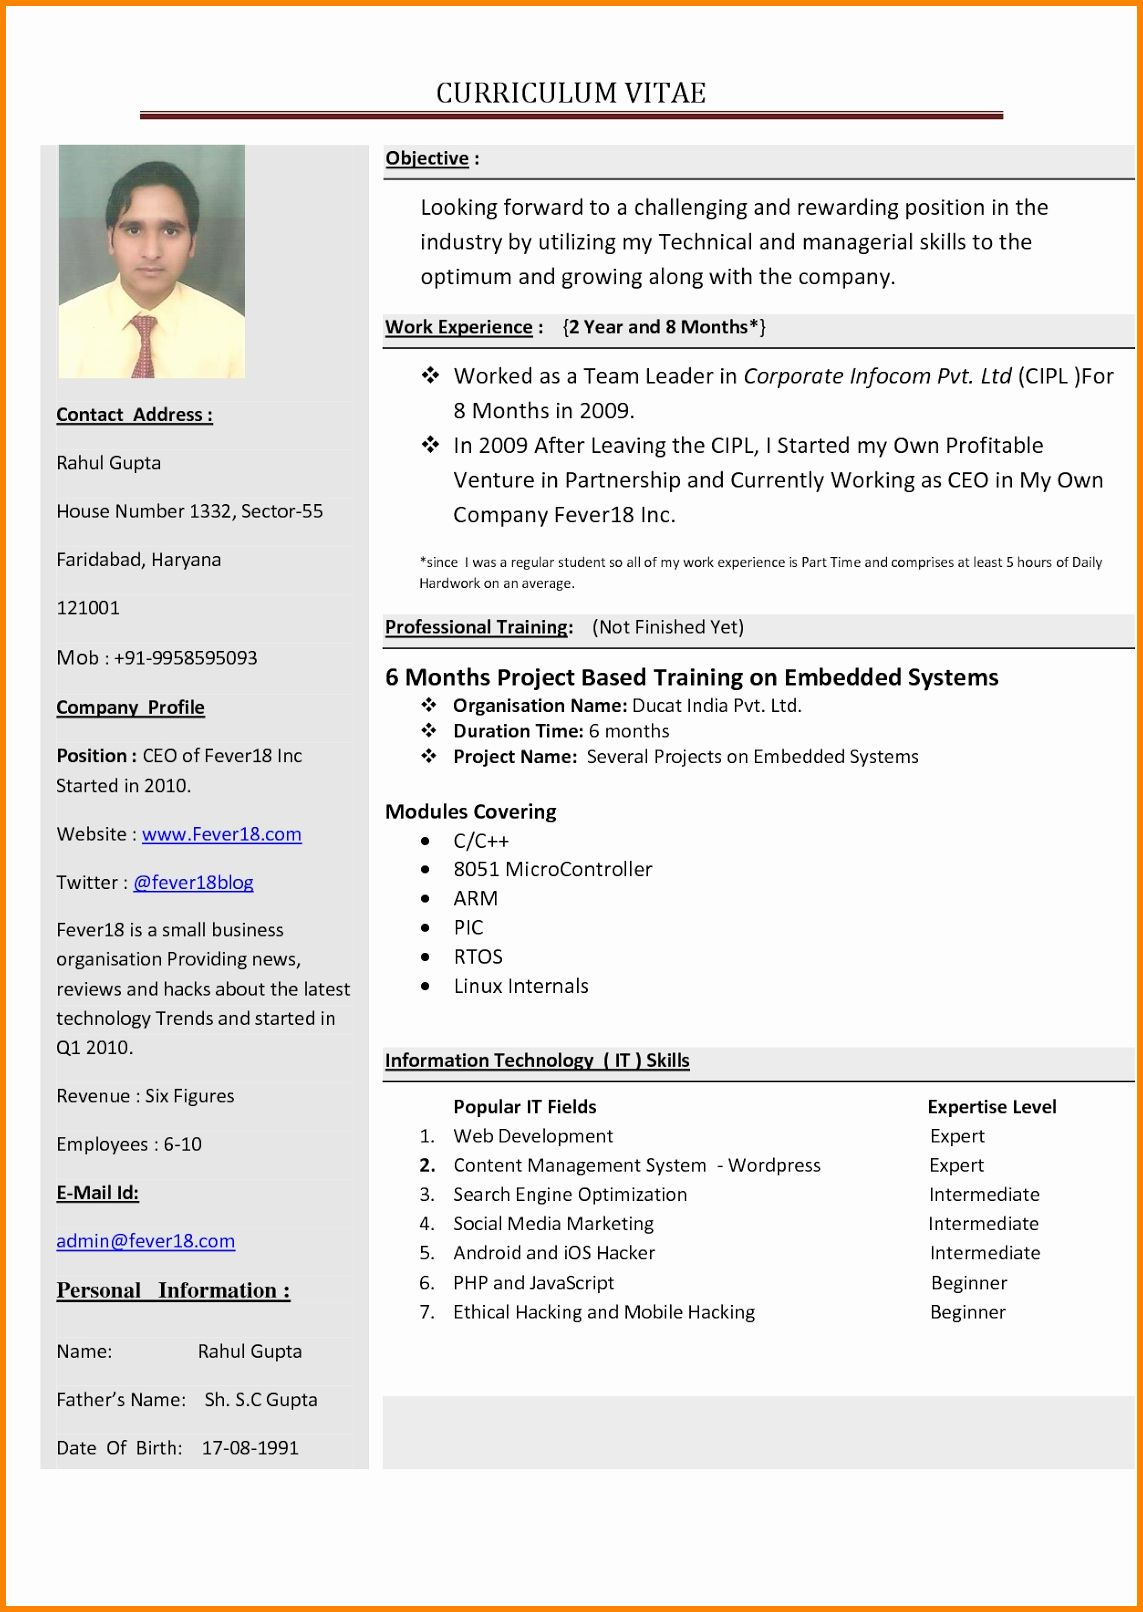 25 Microsoft Word Resume Templates 2010 in 2020 New